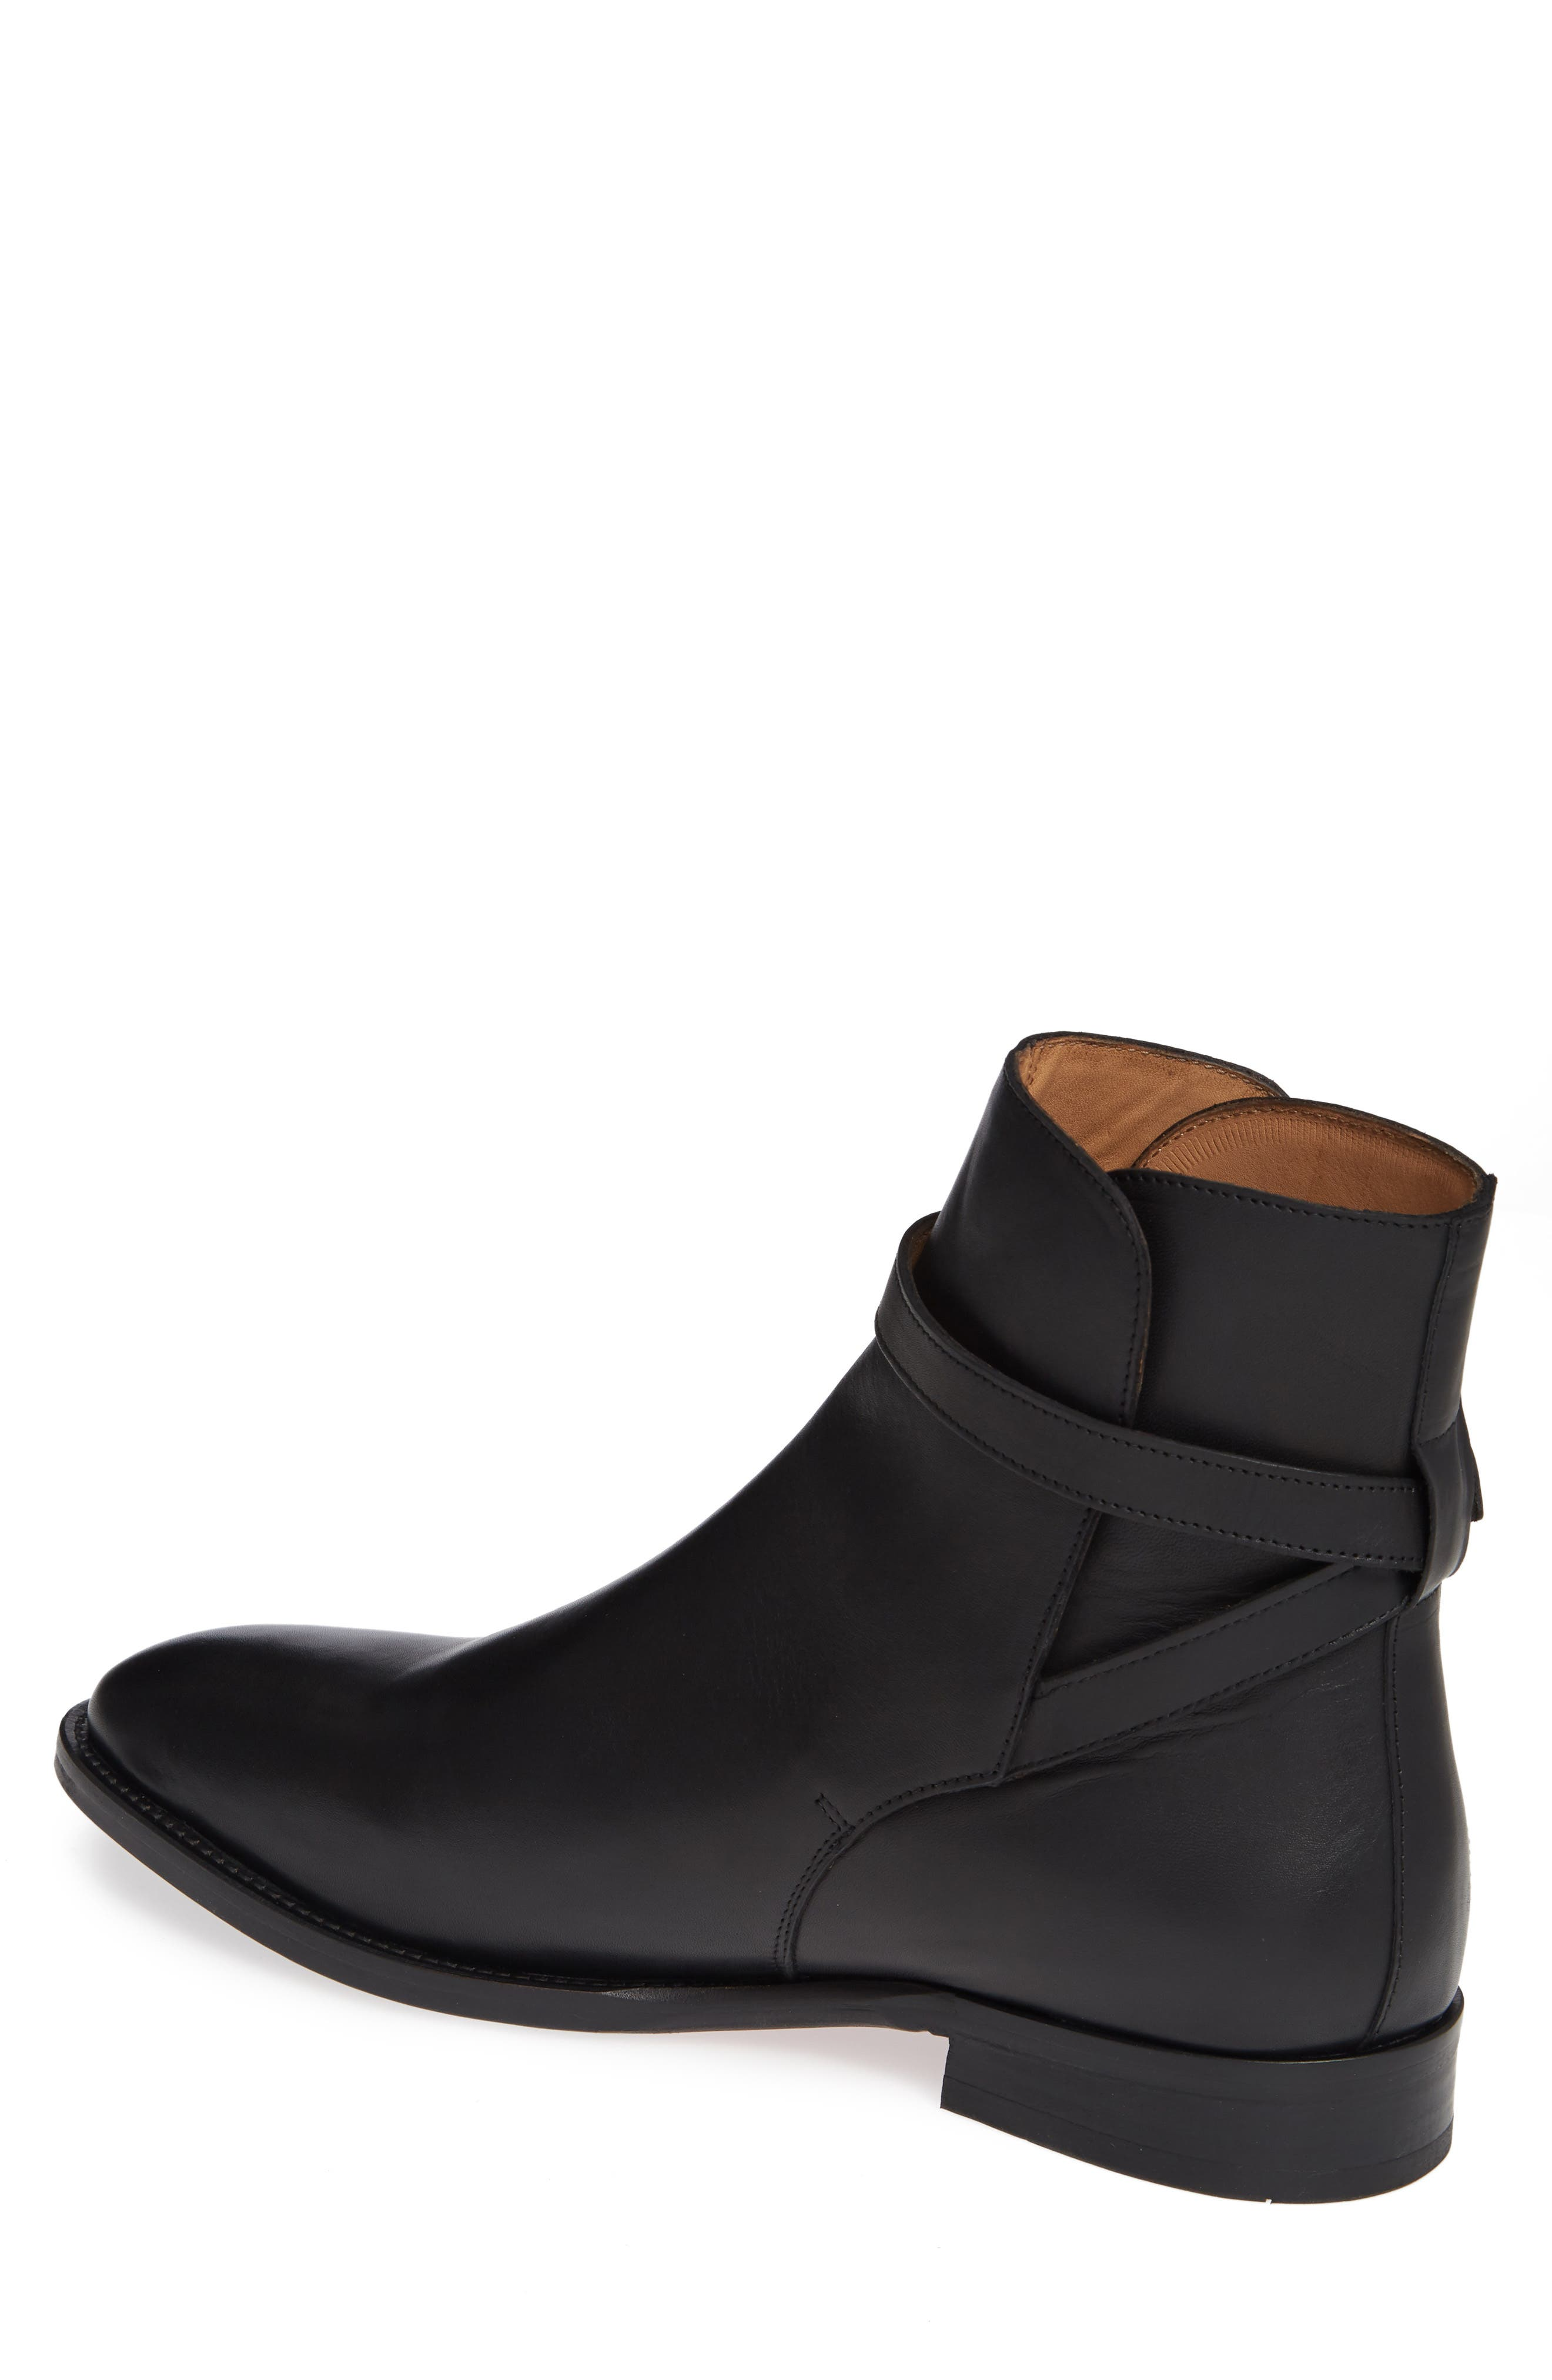 Hop Buckle Strap Boot,                             Alternate thumbnail 2, color,                             BLACK LEATHER